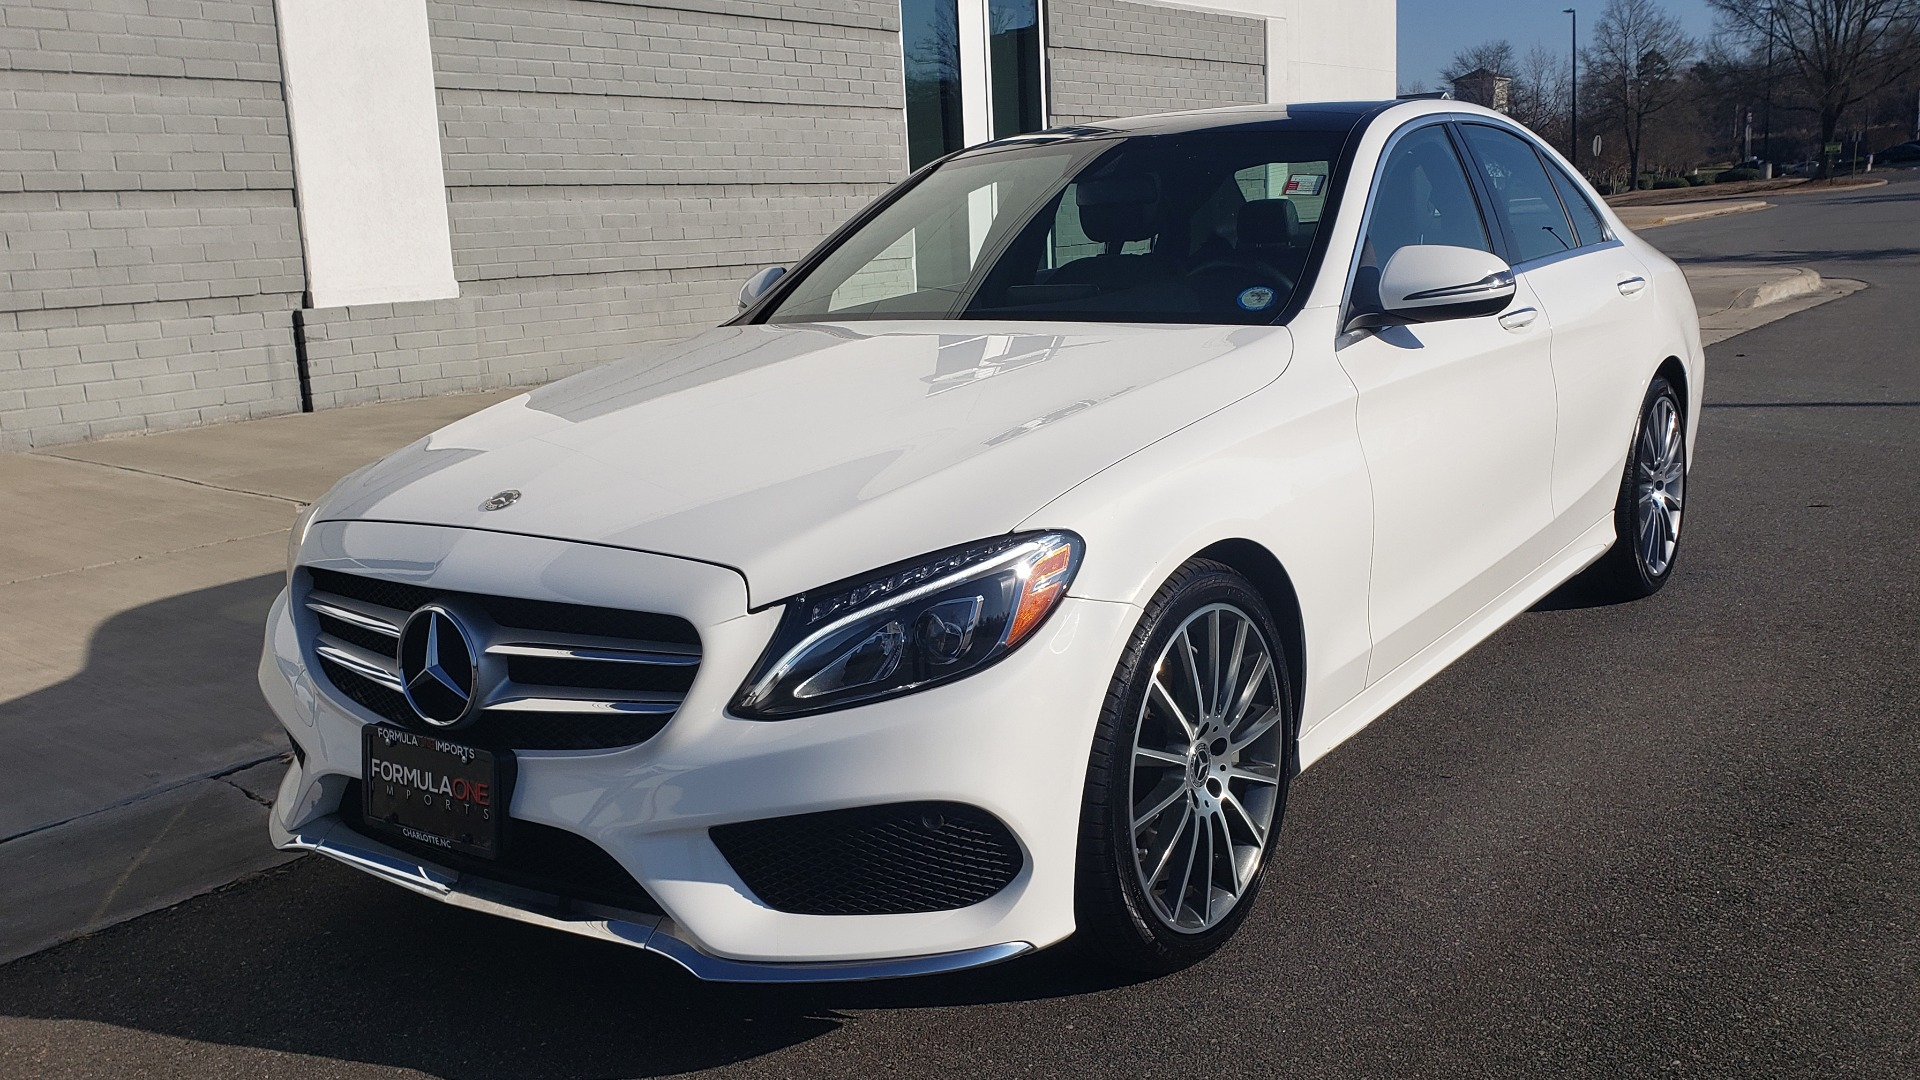 Used 2018 Mercedes-Benz C-Class C 300 PREMIUM / NAV / PANO-ROOF / AMG LINE / MULTIMEDIA for sale $28,235 at Formula Imports in Charlotte NC 28227 3